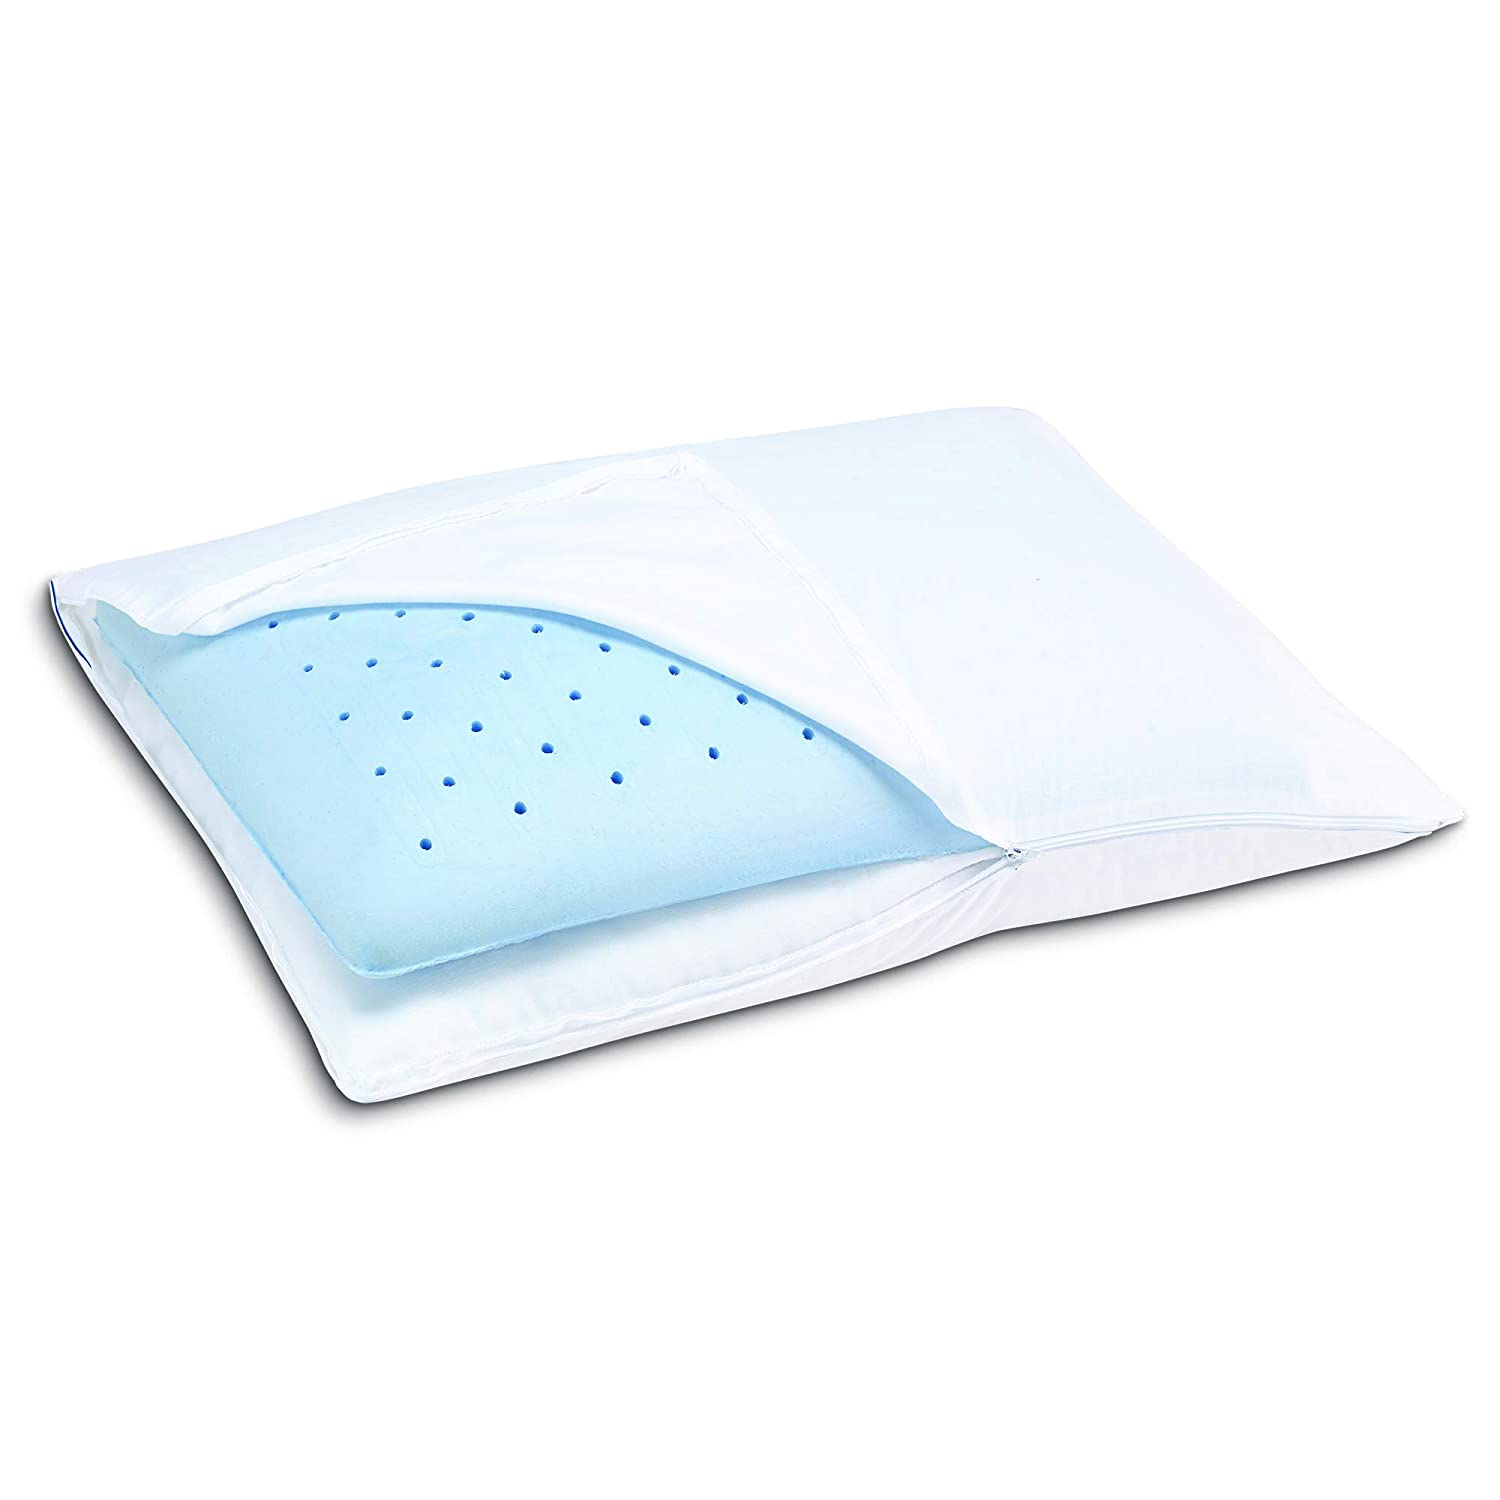 Top 10 Best Memory Foam Pillow (2020 Review & Buying Guide) 1